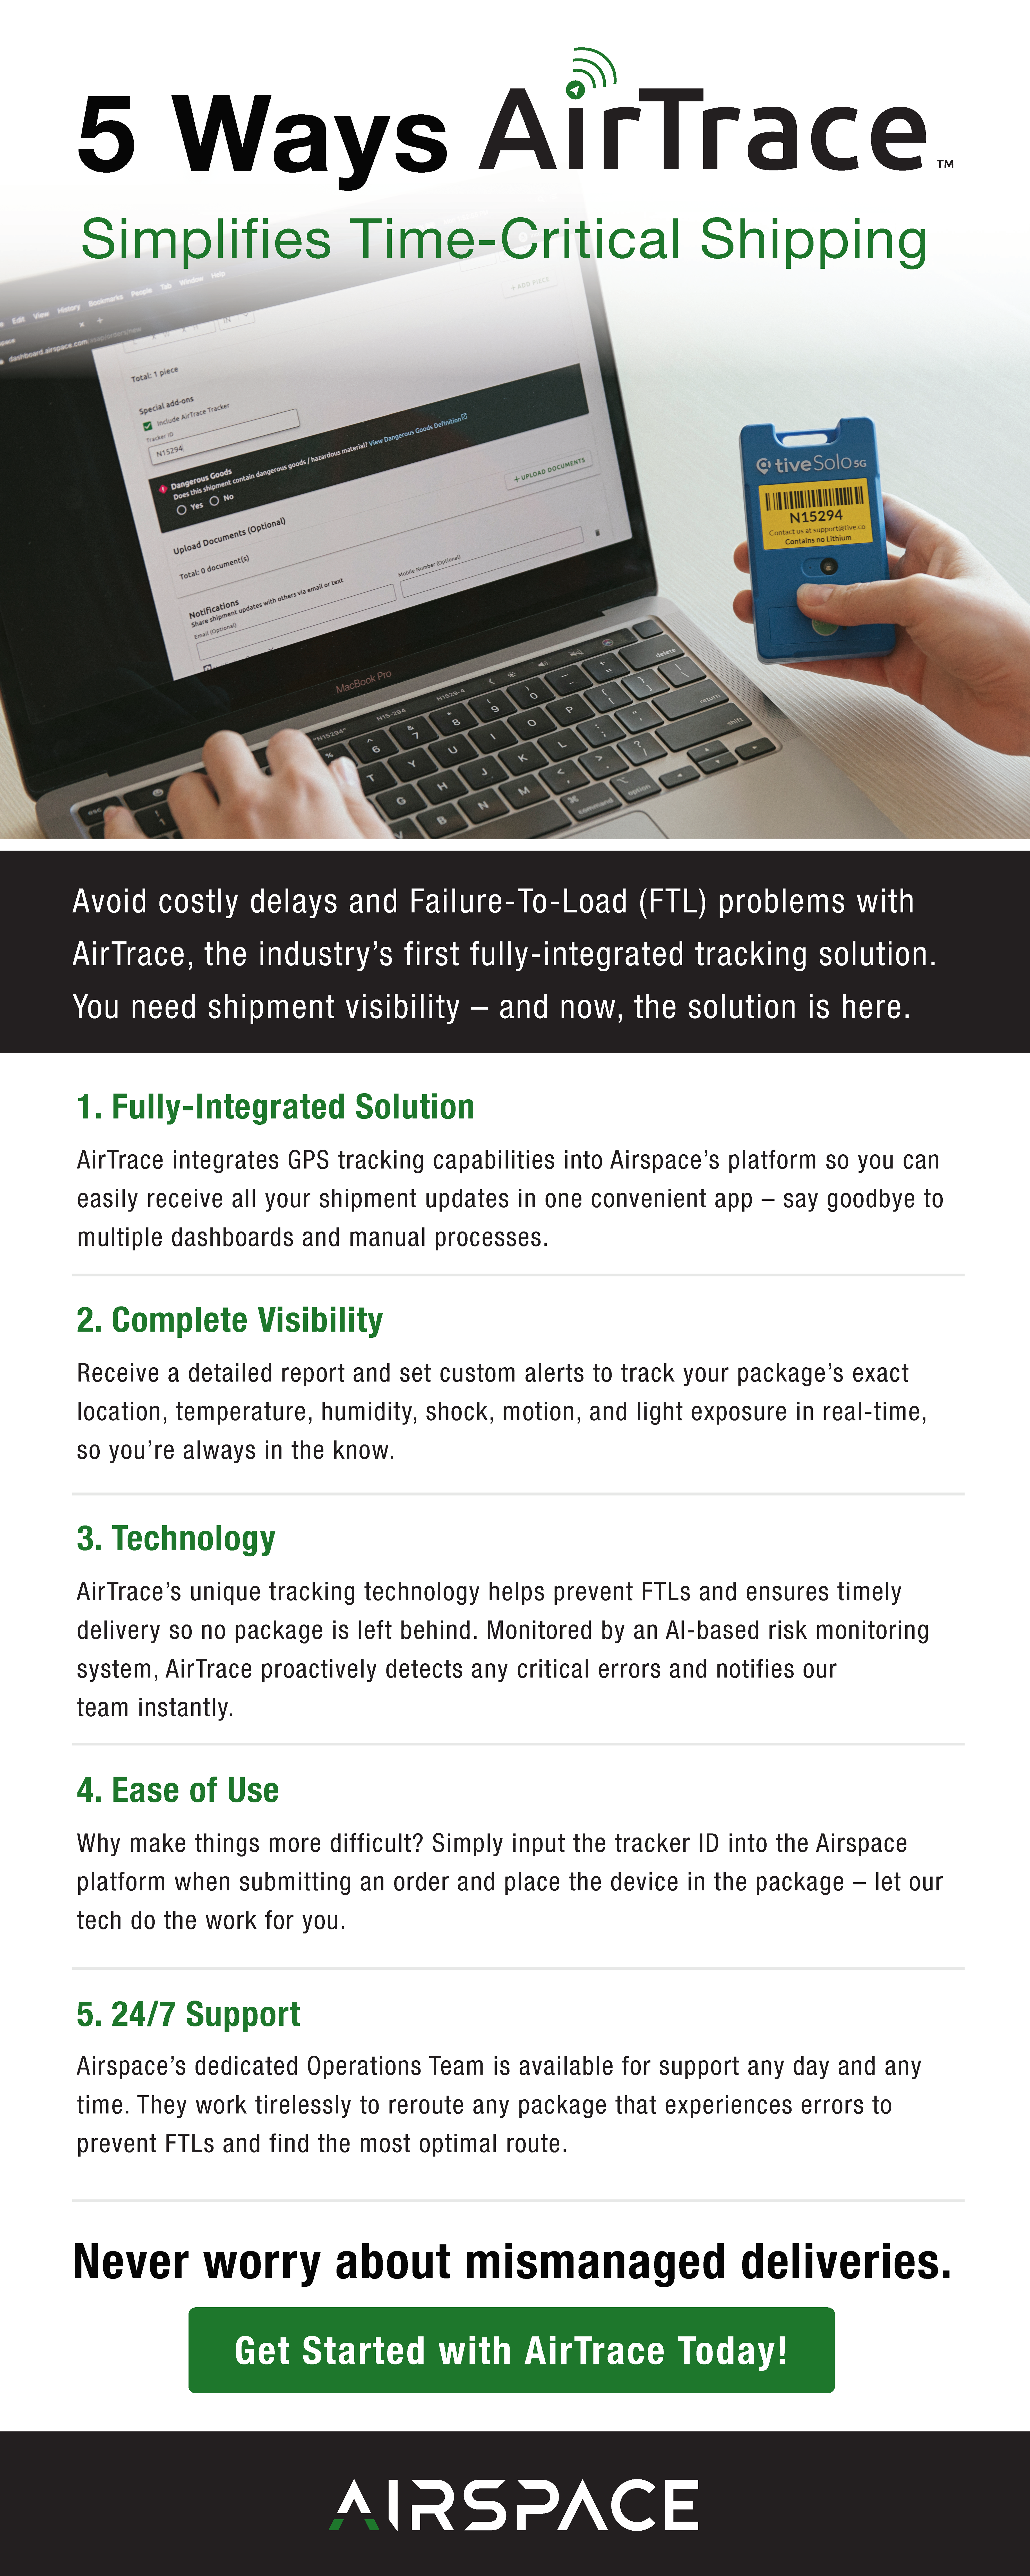 5 Ways AirTrace_Infographic_0607_3